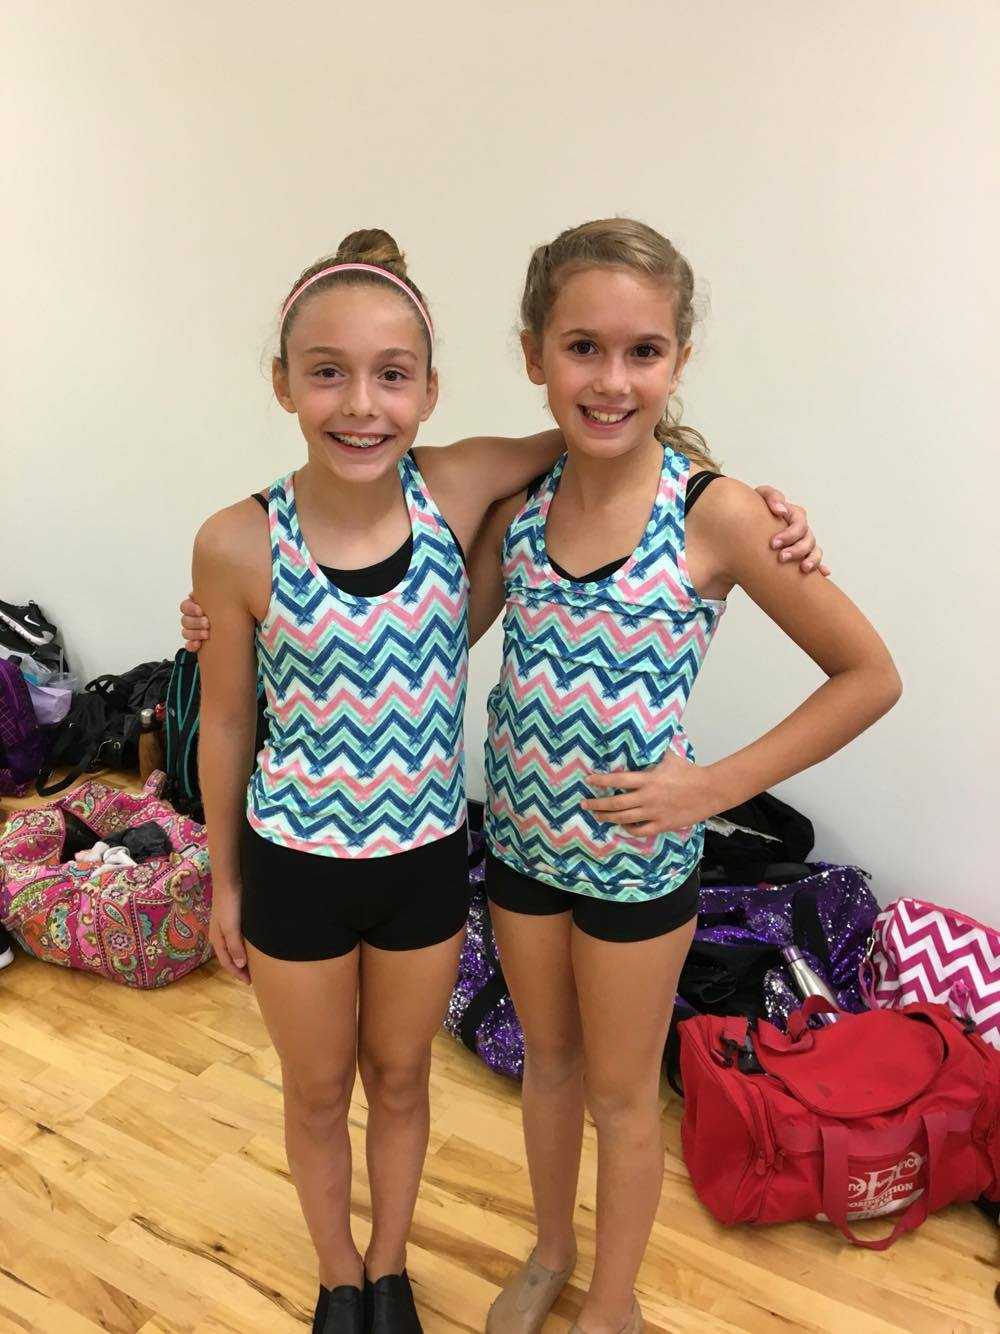 Ellie and Mia ready to start their day dancing!